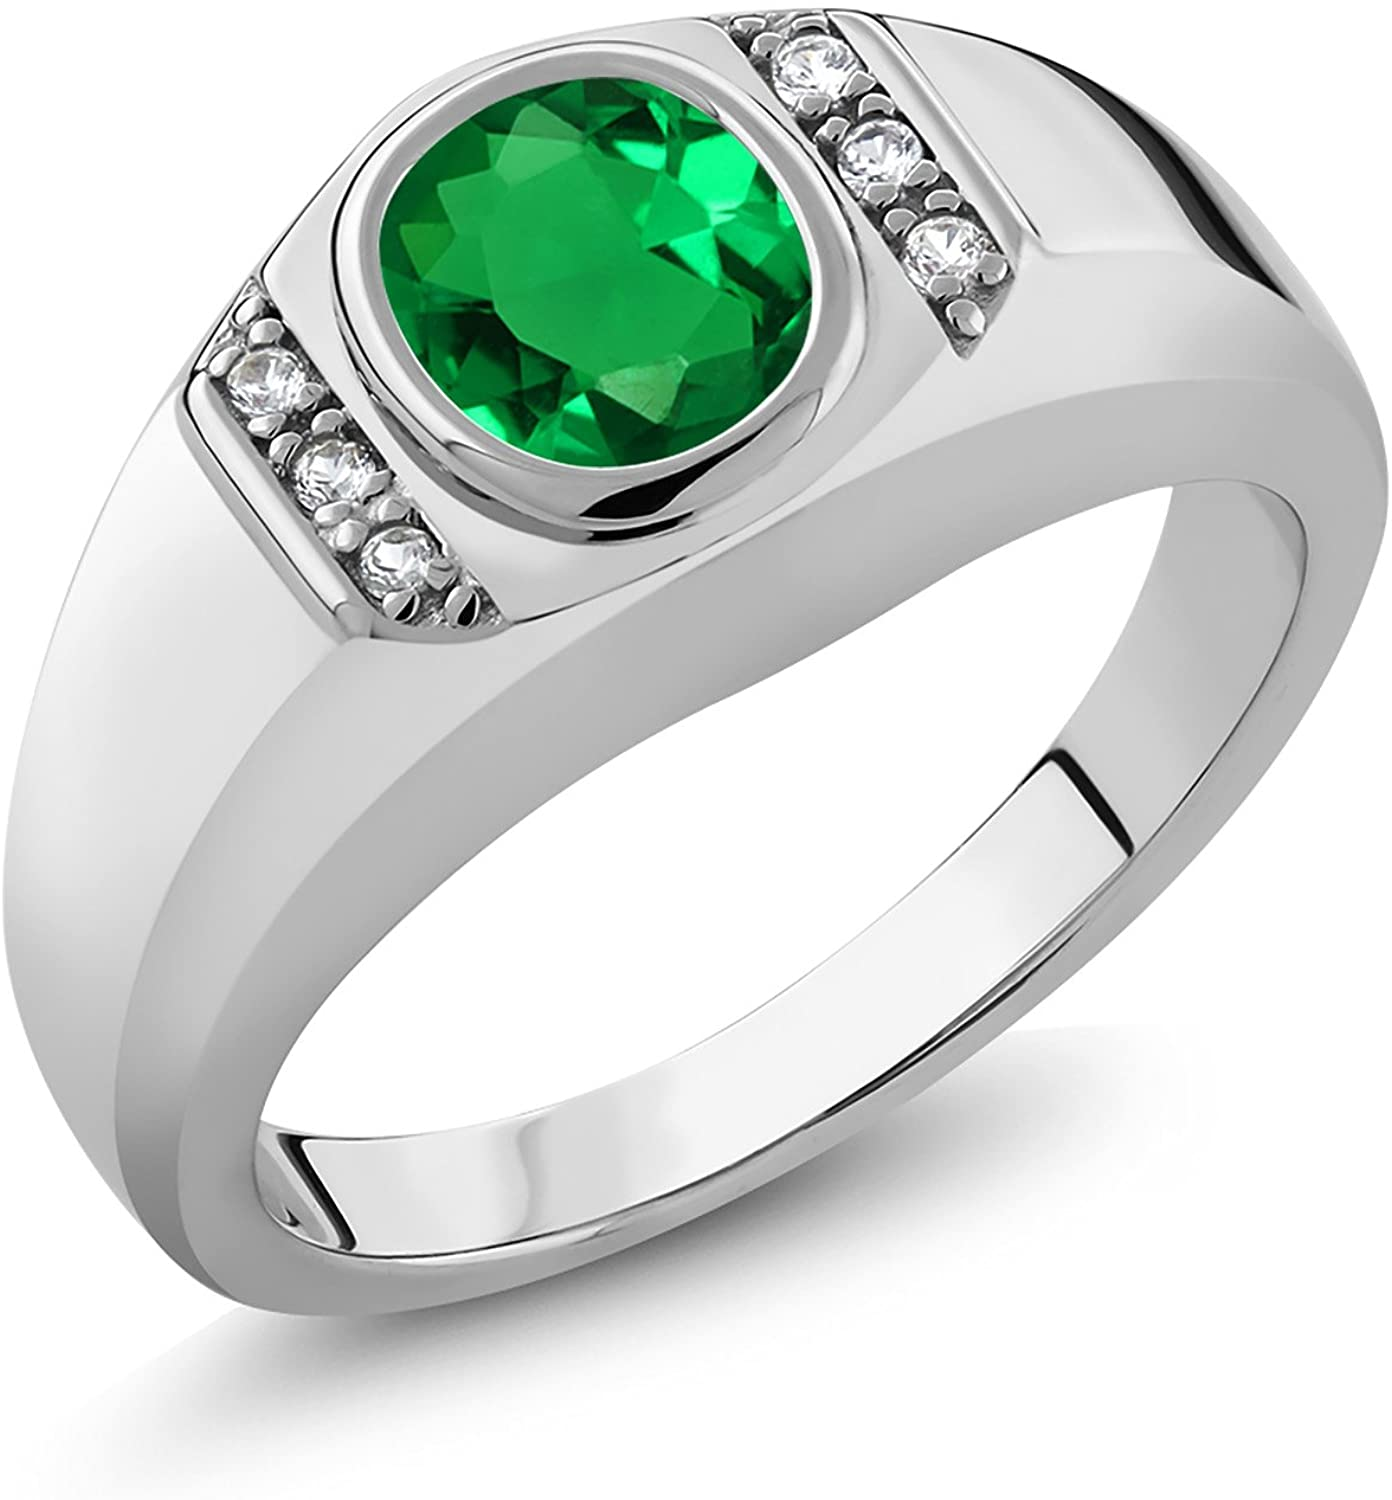 Gem Stone King 1.06 Ct Green Simulated Emerald White Created Sapphire 925 Sterling Silver Men's Ring